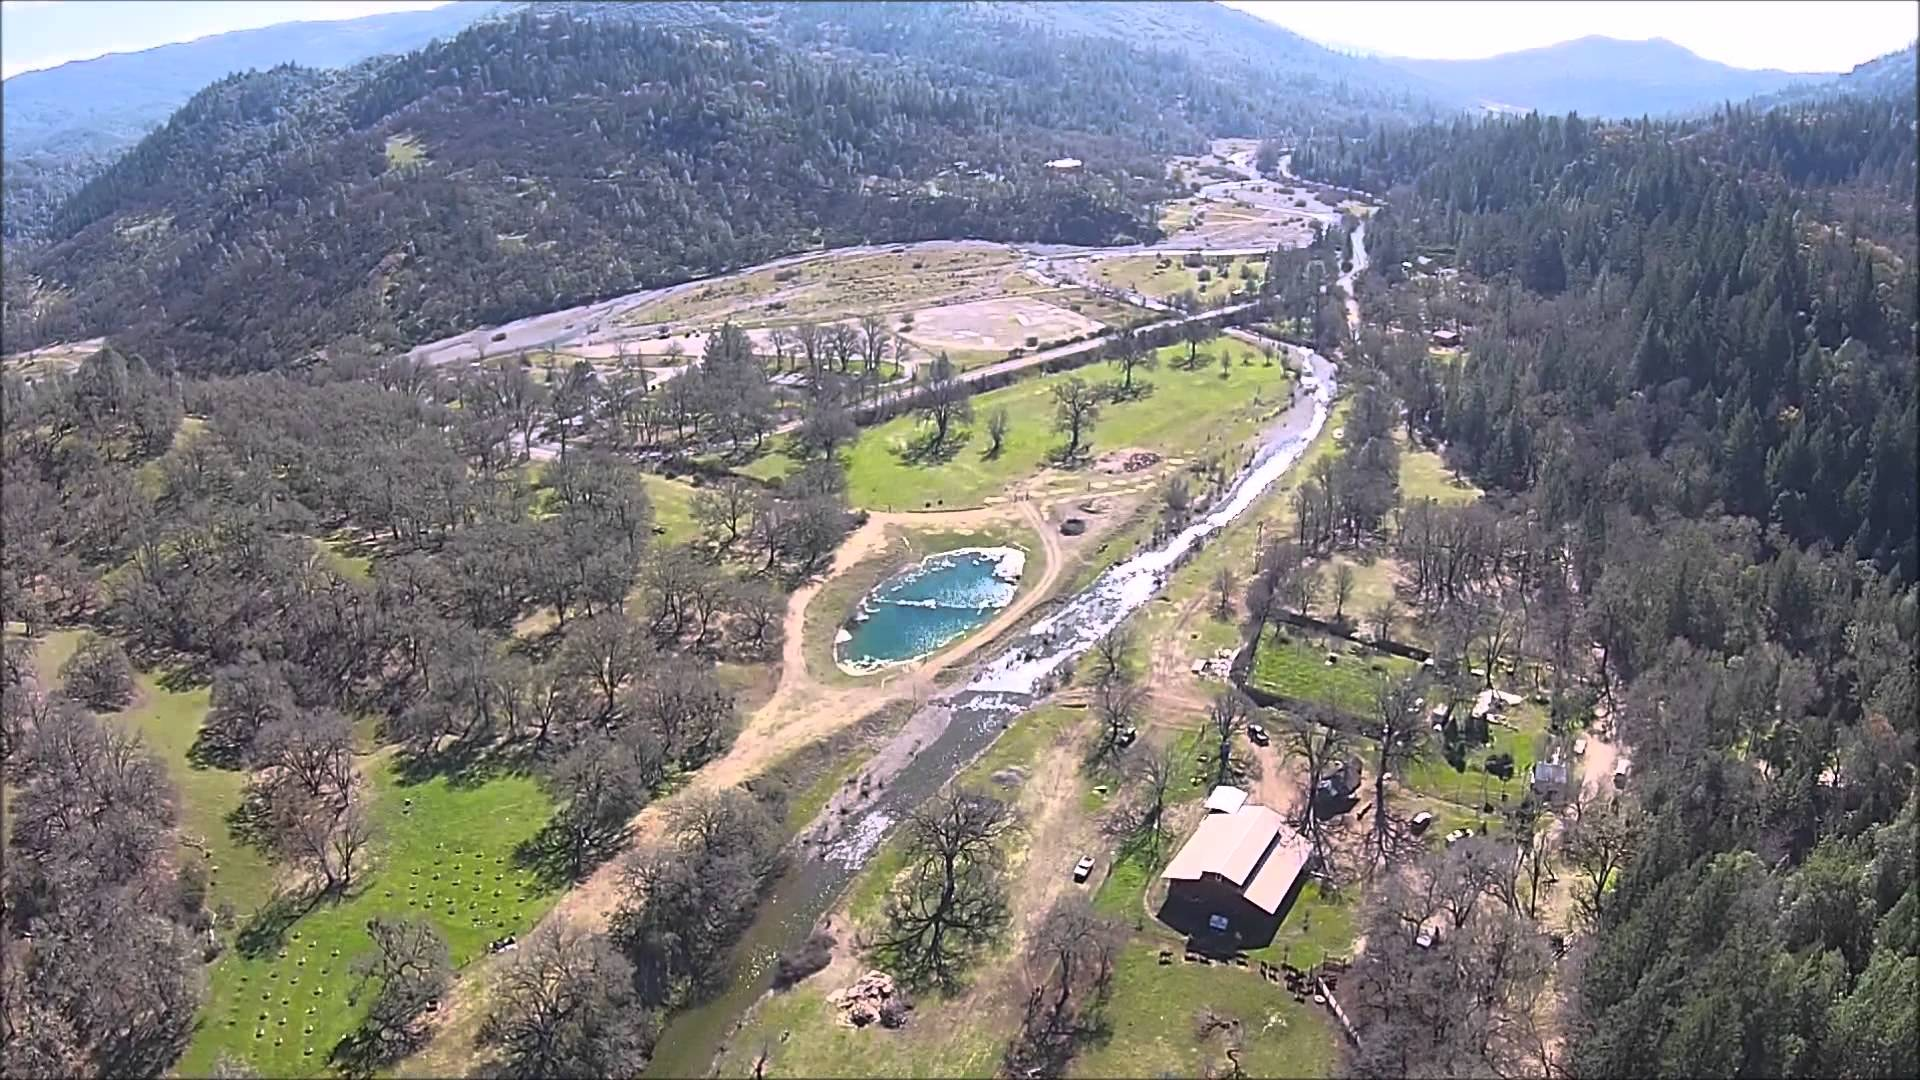 Fire In The Barn 2015 (Aerial View) [3/7/2015]